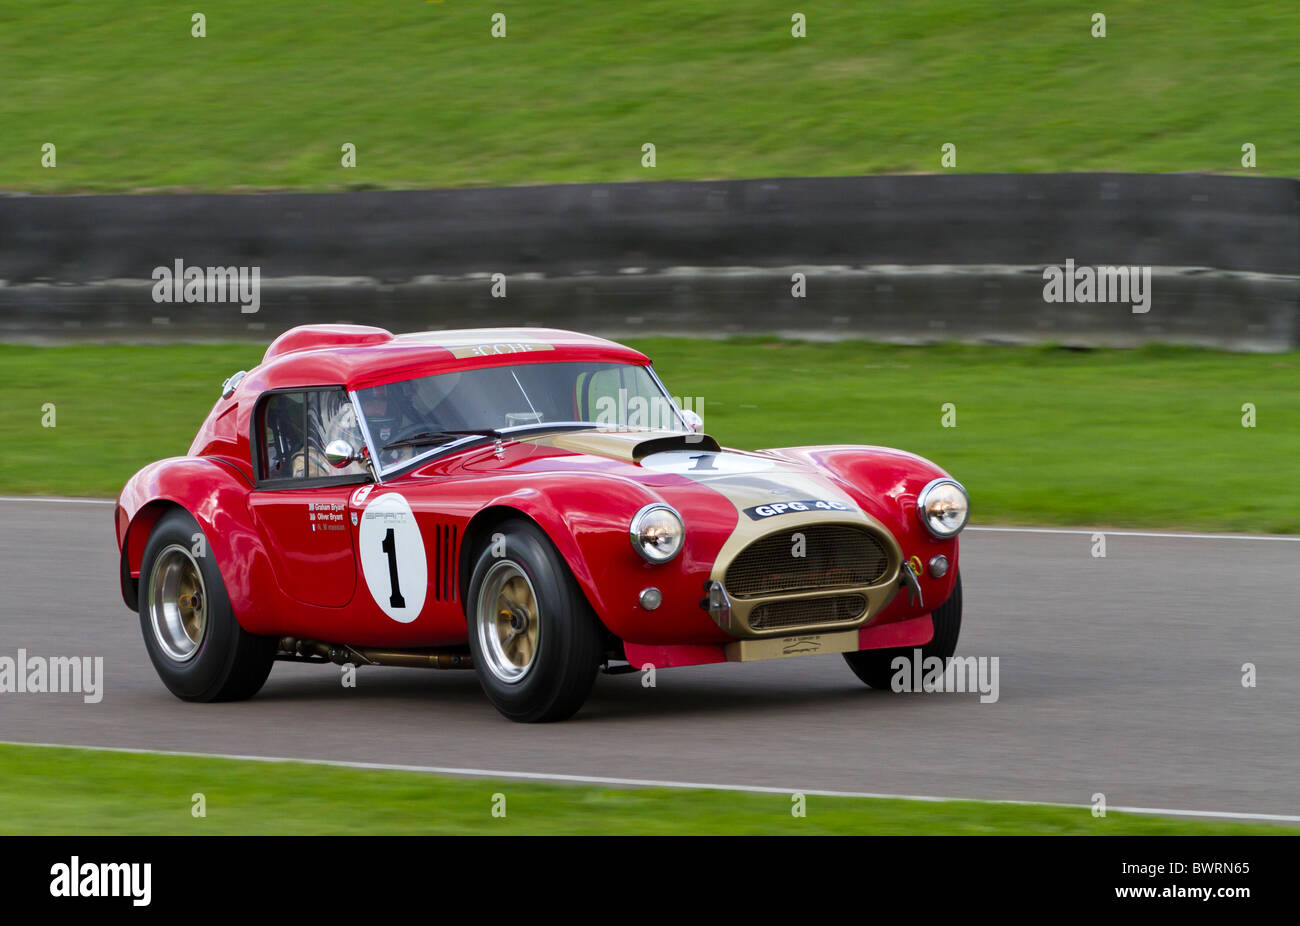 1964 AC Cobra with driver Oliver Bryant. RAC TT Celebration race. 2010 Goodwood Revival, Sussex, England, UK. - Stock Image